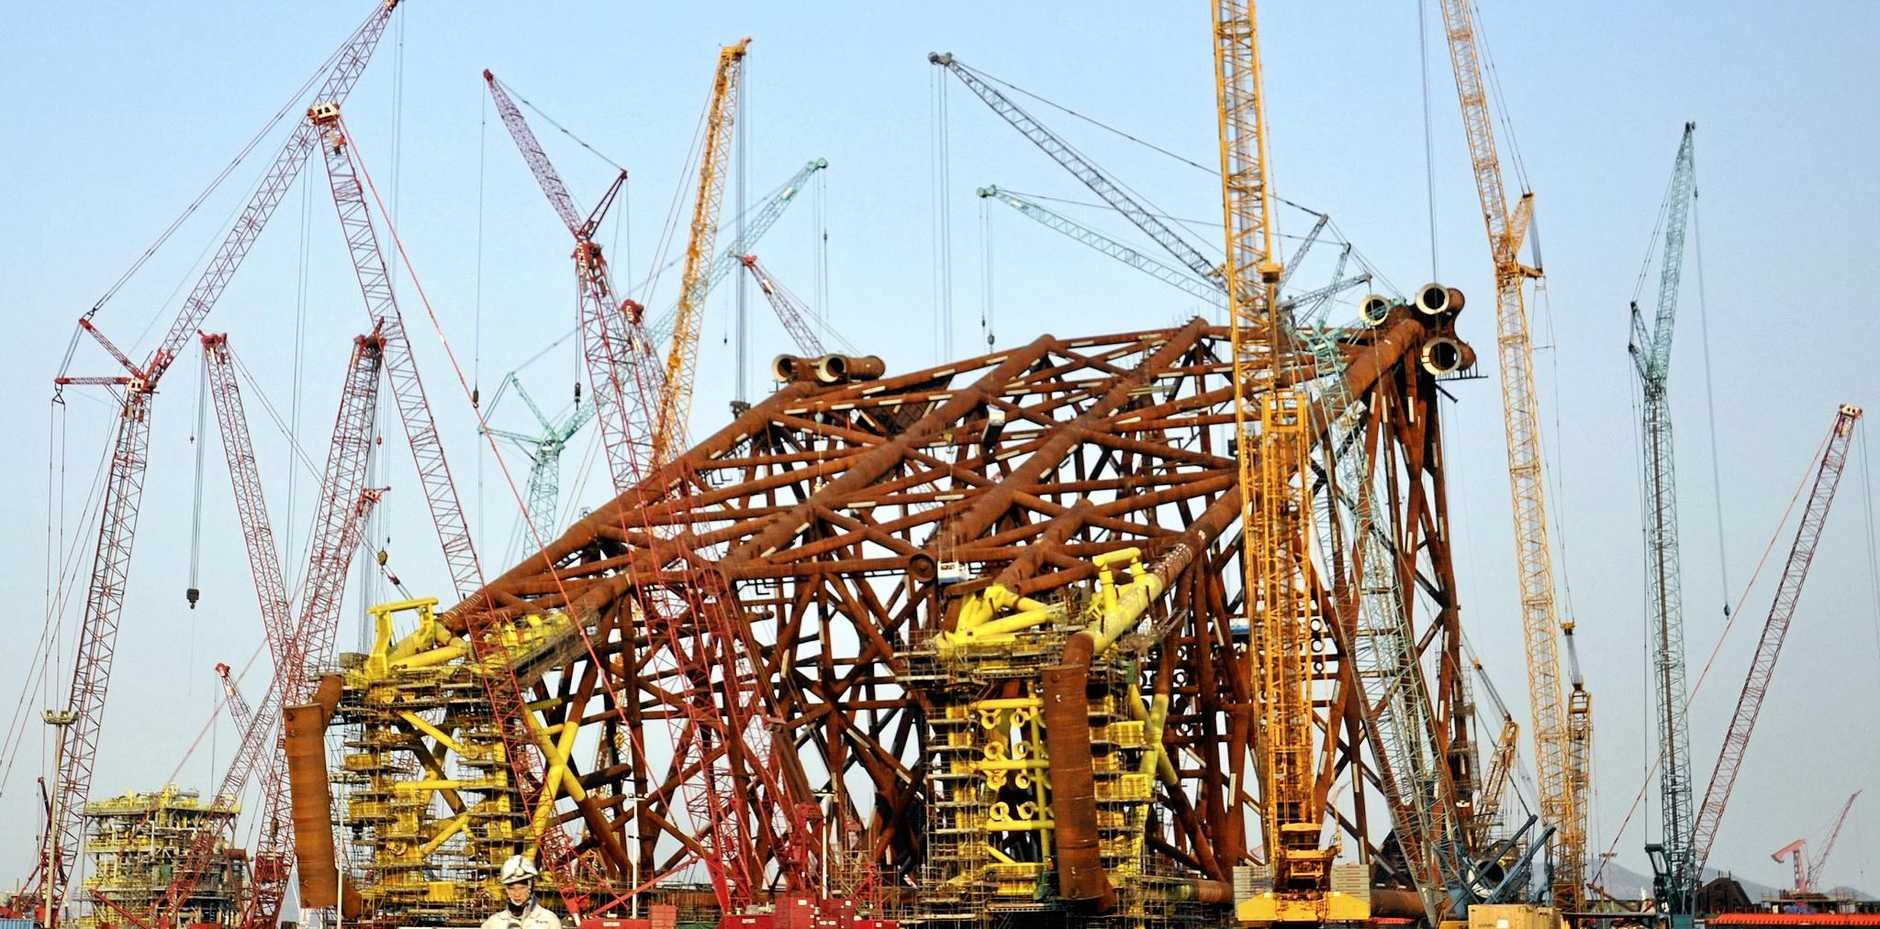 CHINA WATCH: Construction abounds at a subsidiary of China Offshore Oil Engineering Co Ltd in Qingdao, in eastern China's Shandong province.